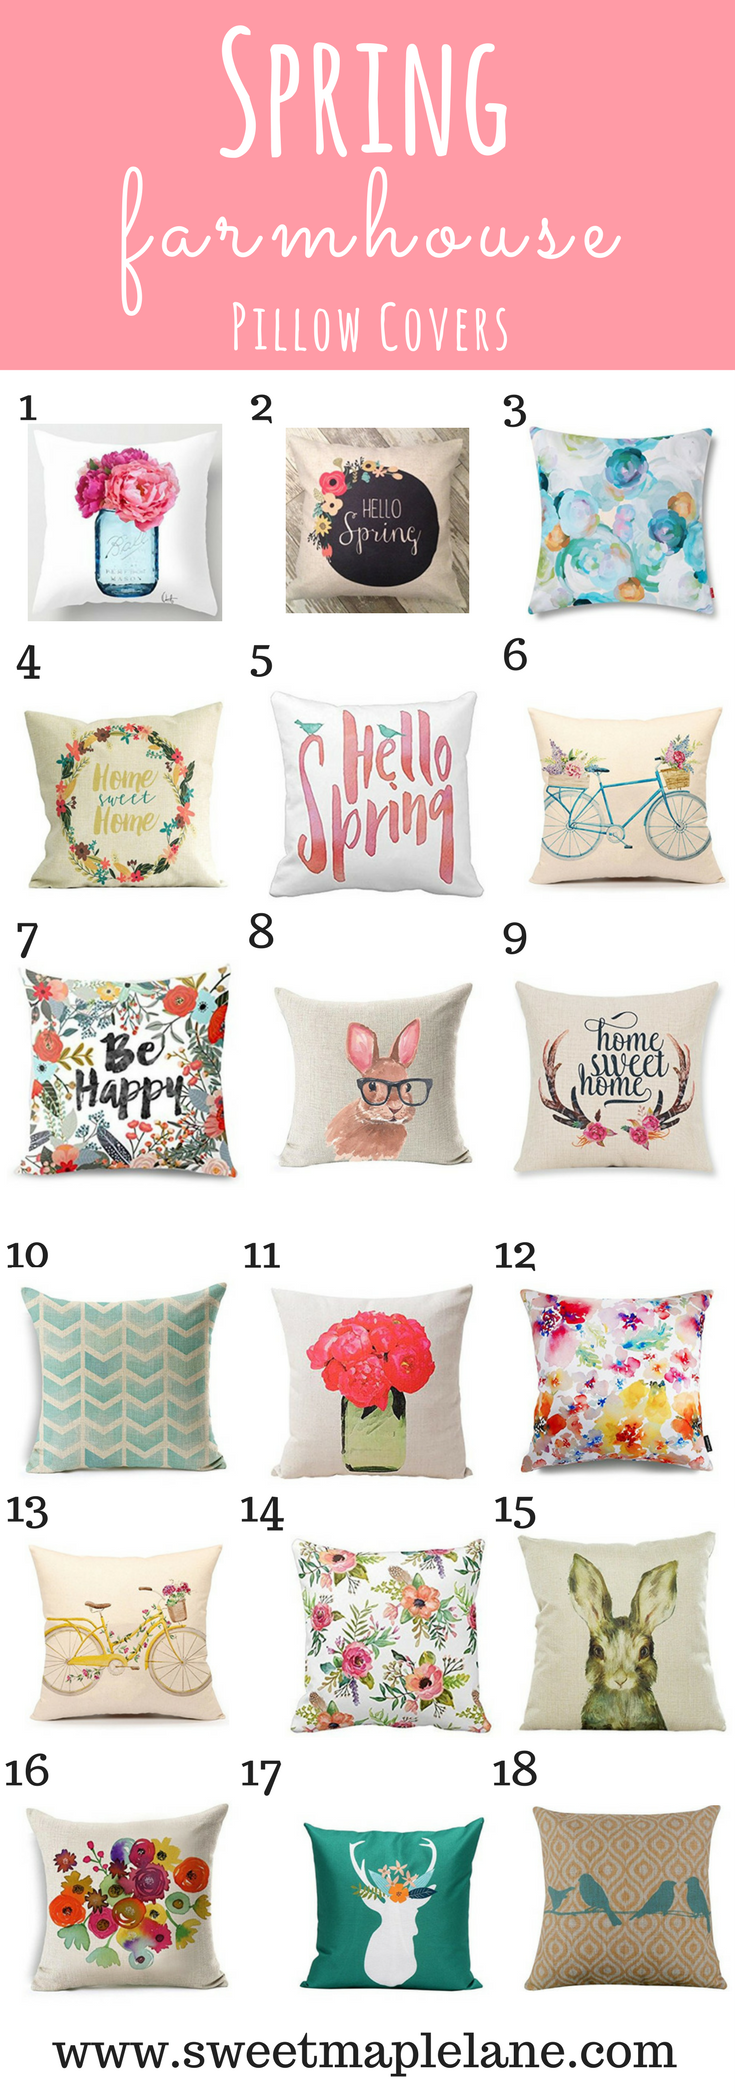 Super cute spring farmhouse pillow covers to brighten up your decor! #style #shopping #styles #outfit #pretty #girl #girls #beauty #beautiful #me #cute #stylish #photooftheday #swag #dress #shoes #diy #design #fashion #homedecor